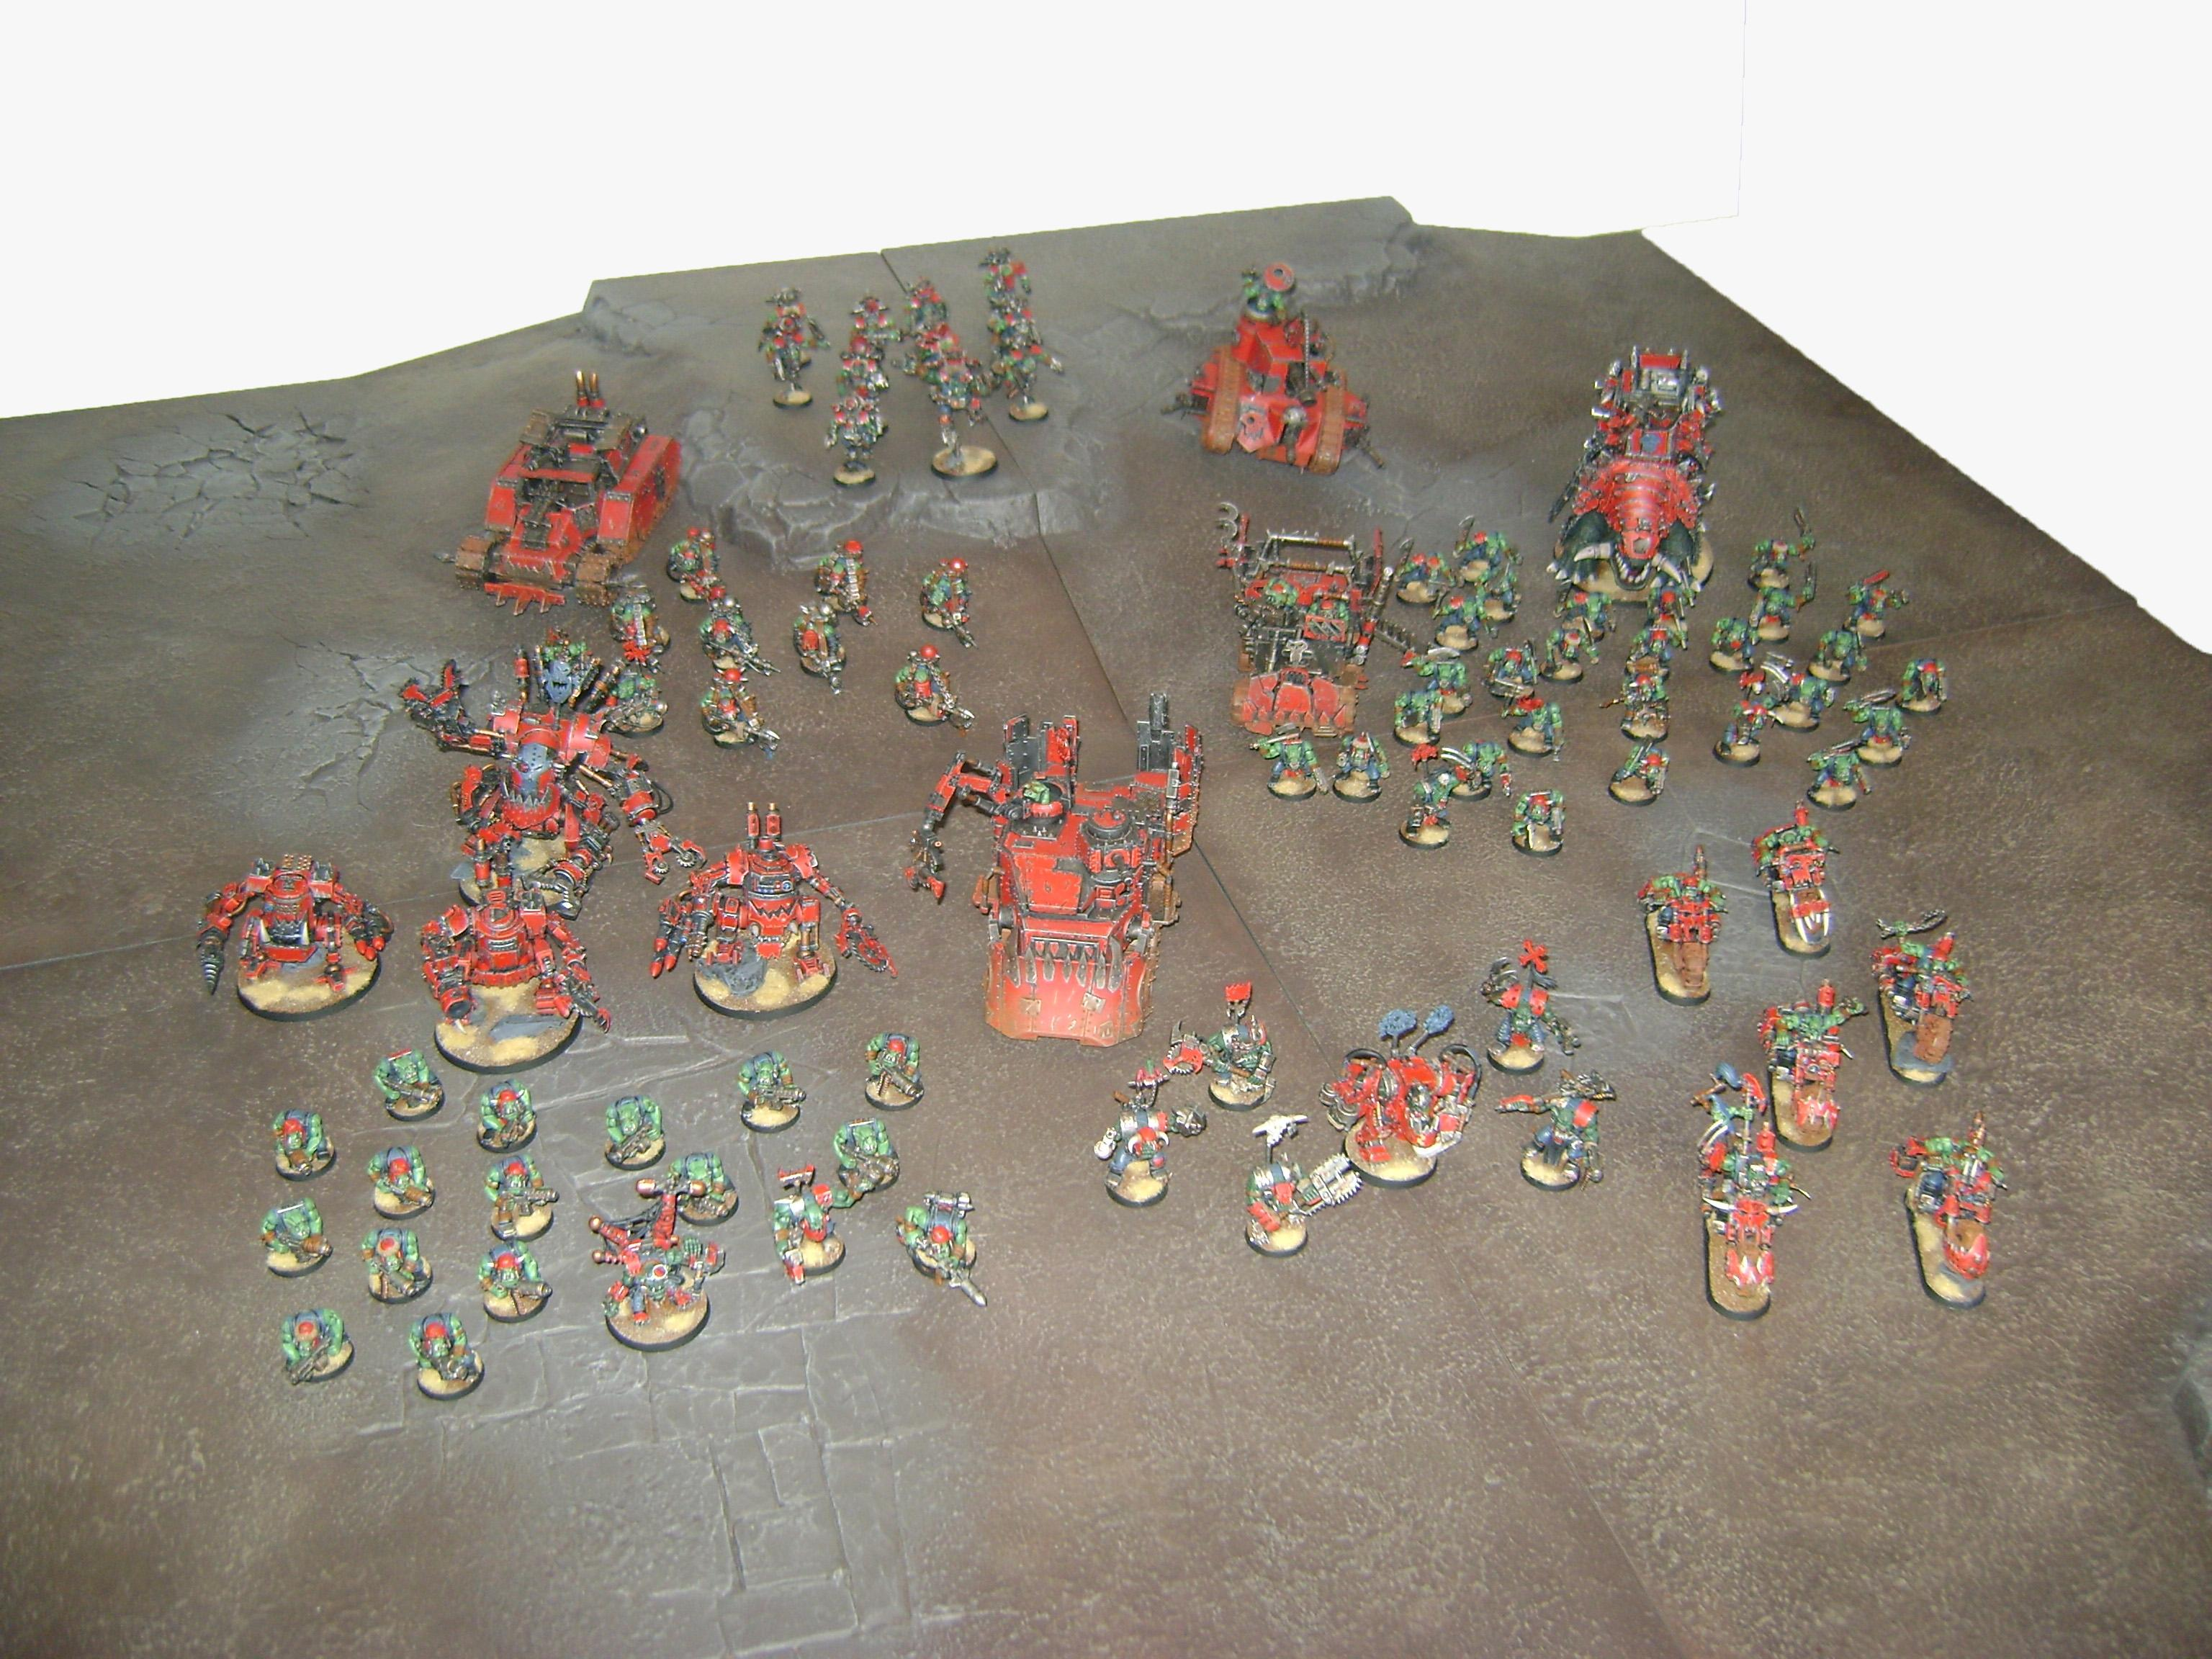 Army, Mobs, Orks, Red, Red Orks